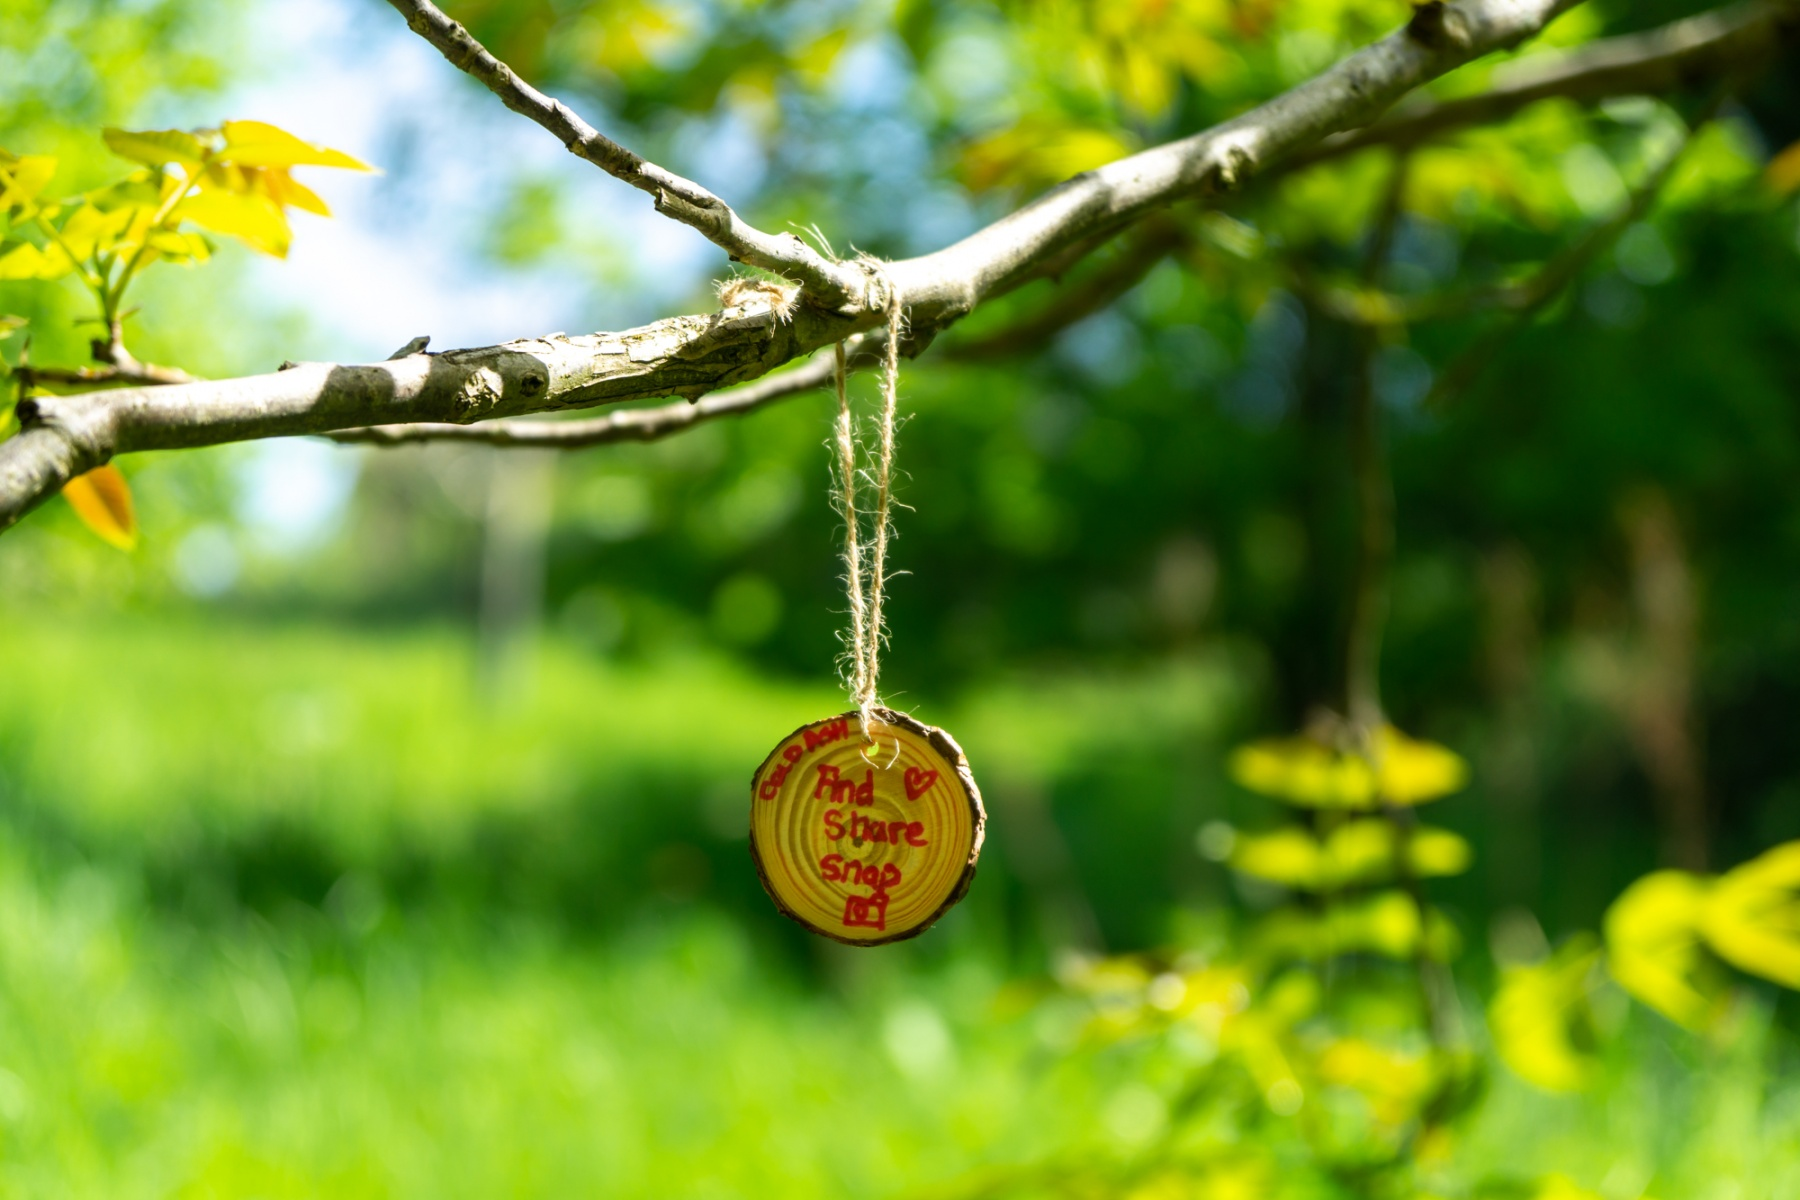 "A small wooden disc is hanging from a tree. Children's writing on the disc says ""Cold Ash, And Share a Snap"". There is also a drawing of a camera on the disc."